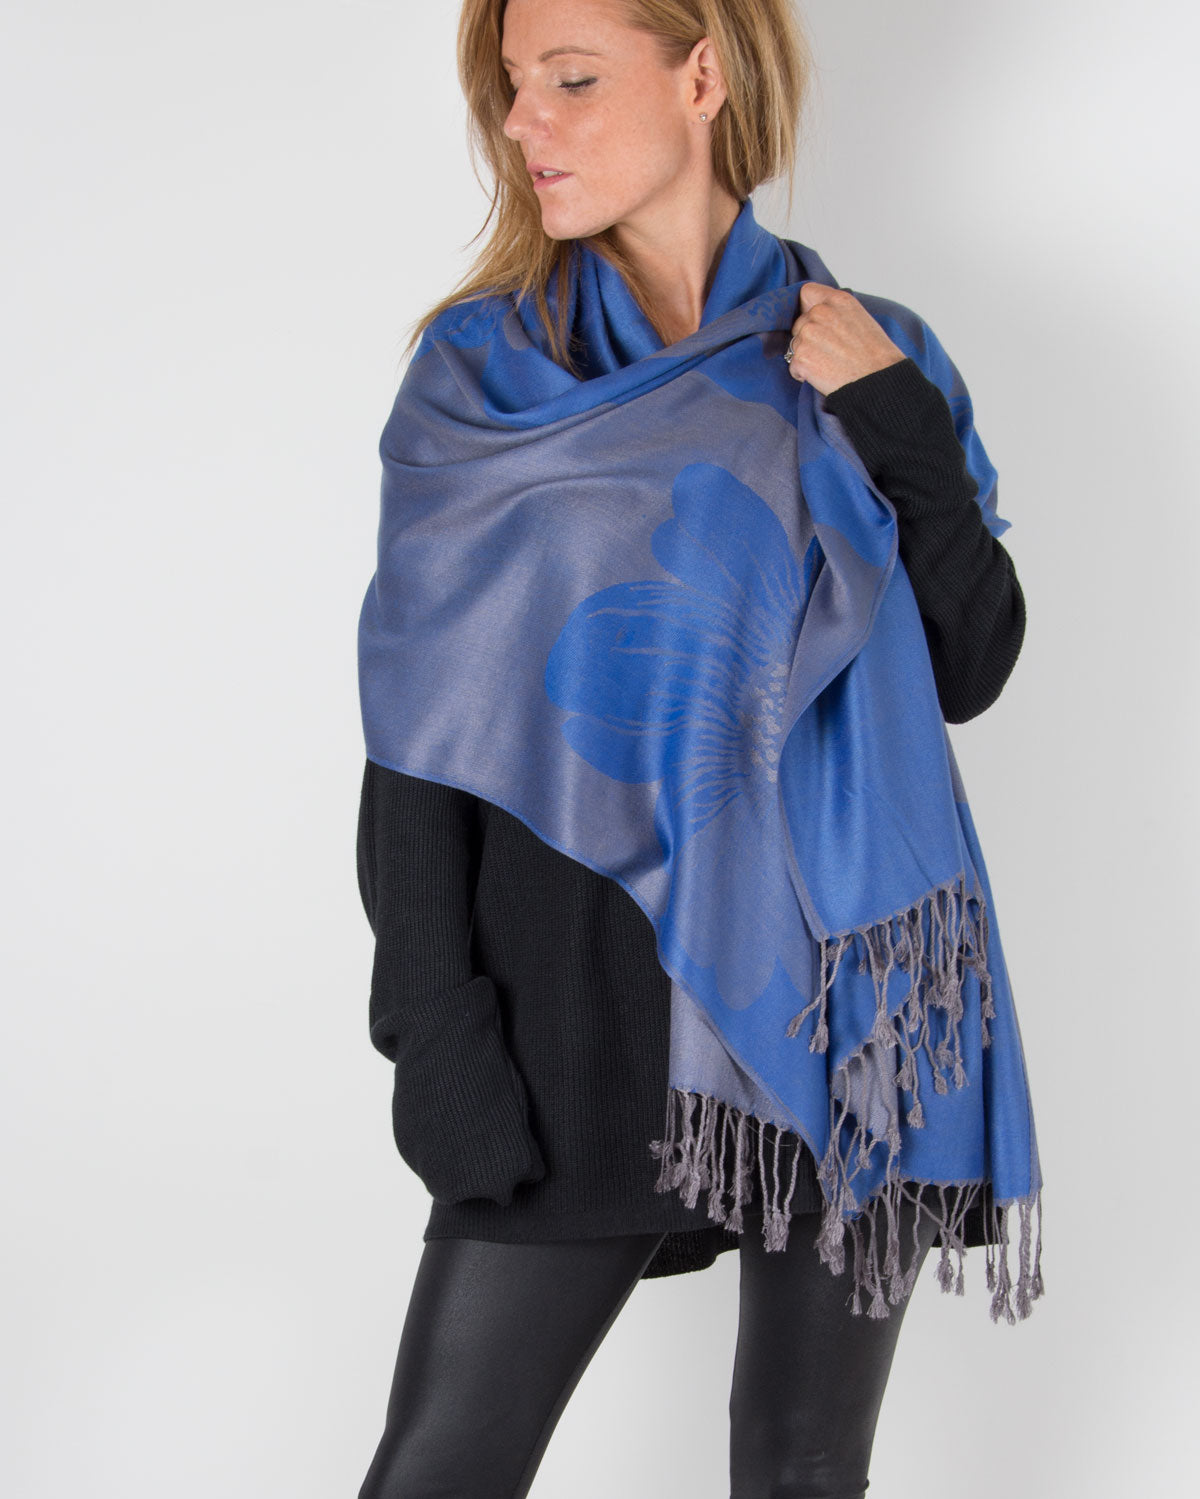 an image showing a blue floral pashmina